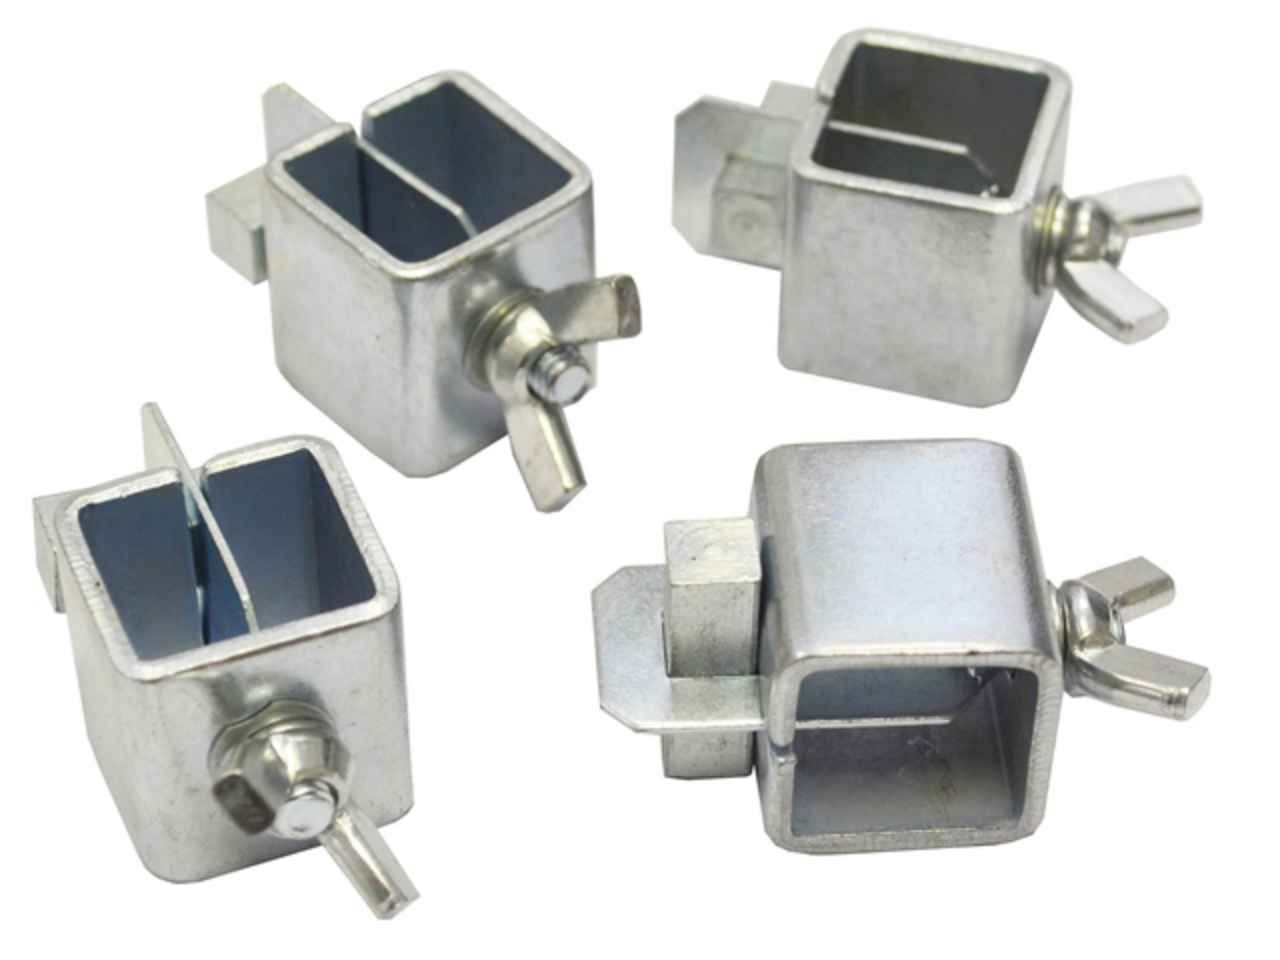 FAIBWCLAMPS4.JPG